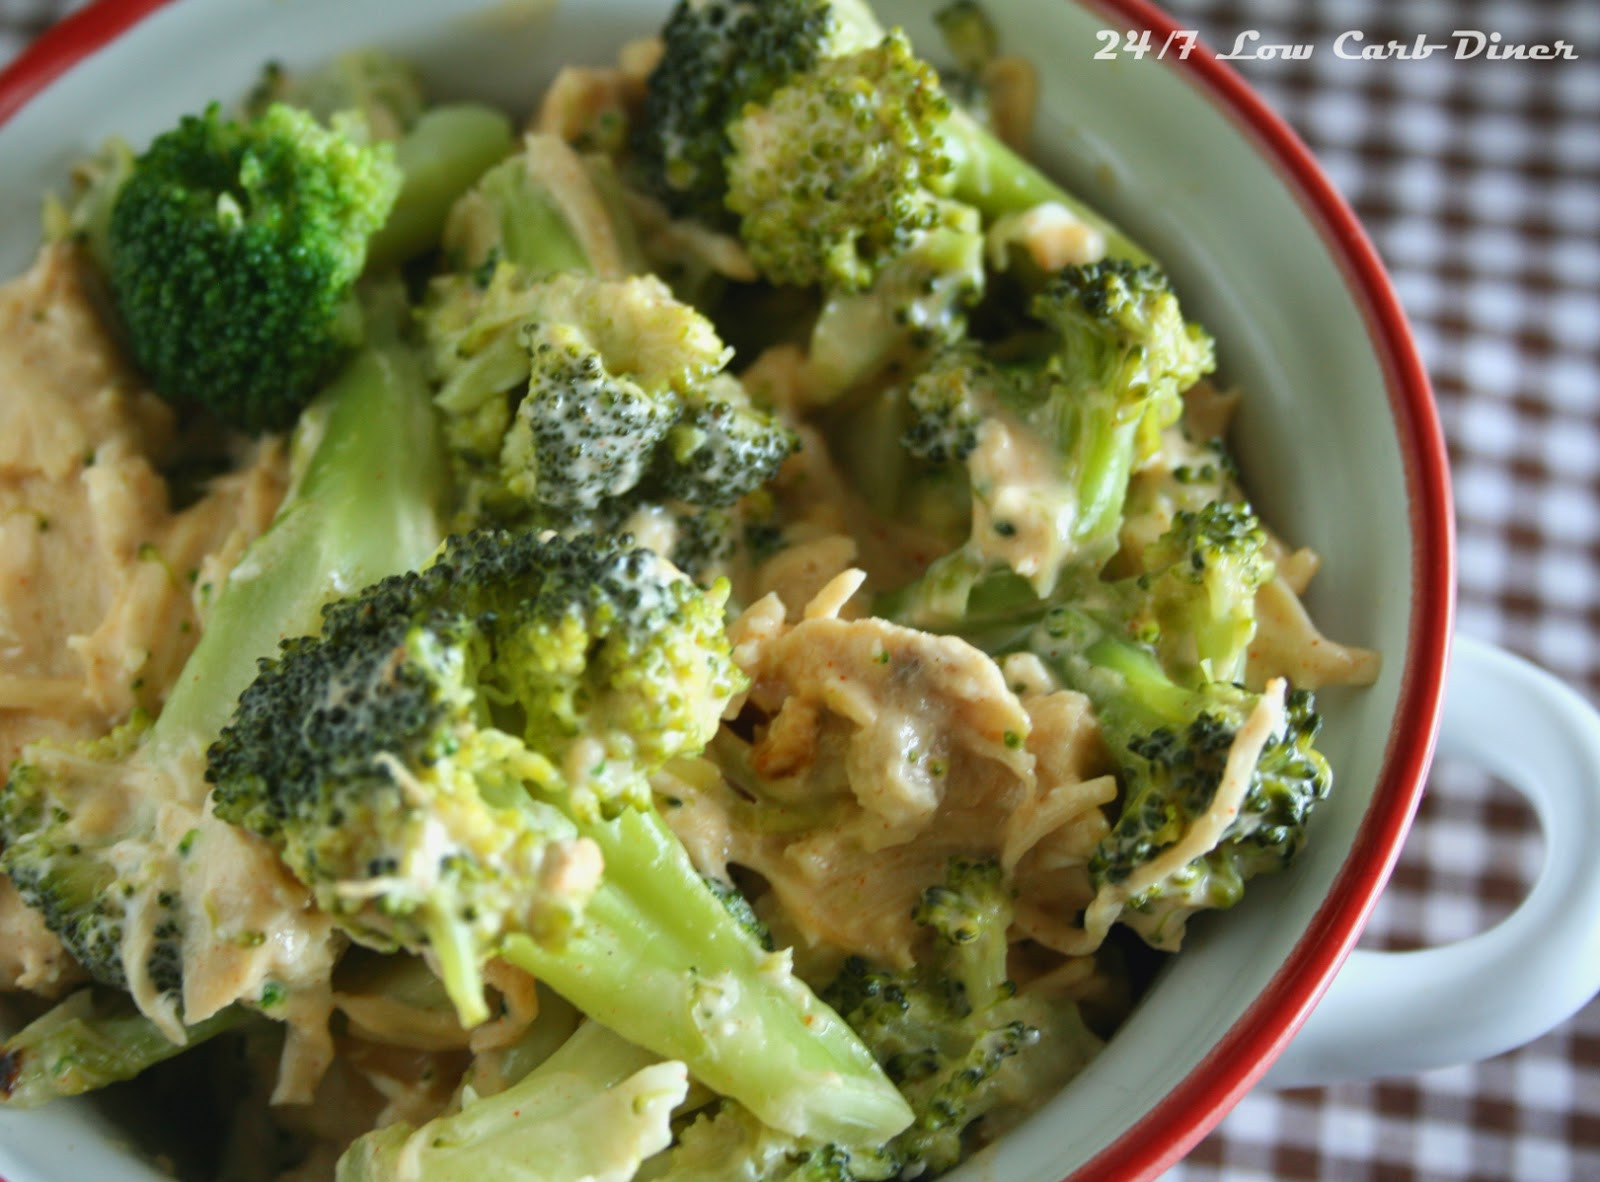 Low Carb Chicken And Broccoli Casserole  24 7 Low Carb Diner Chicken and Broccoli Casserole for 2